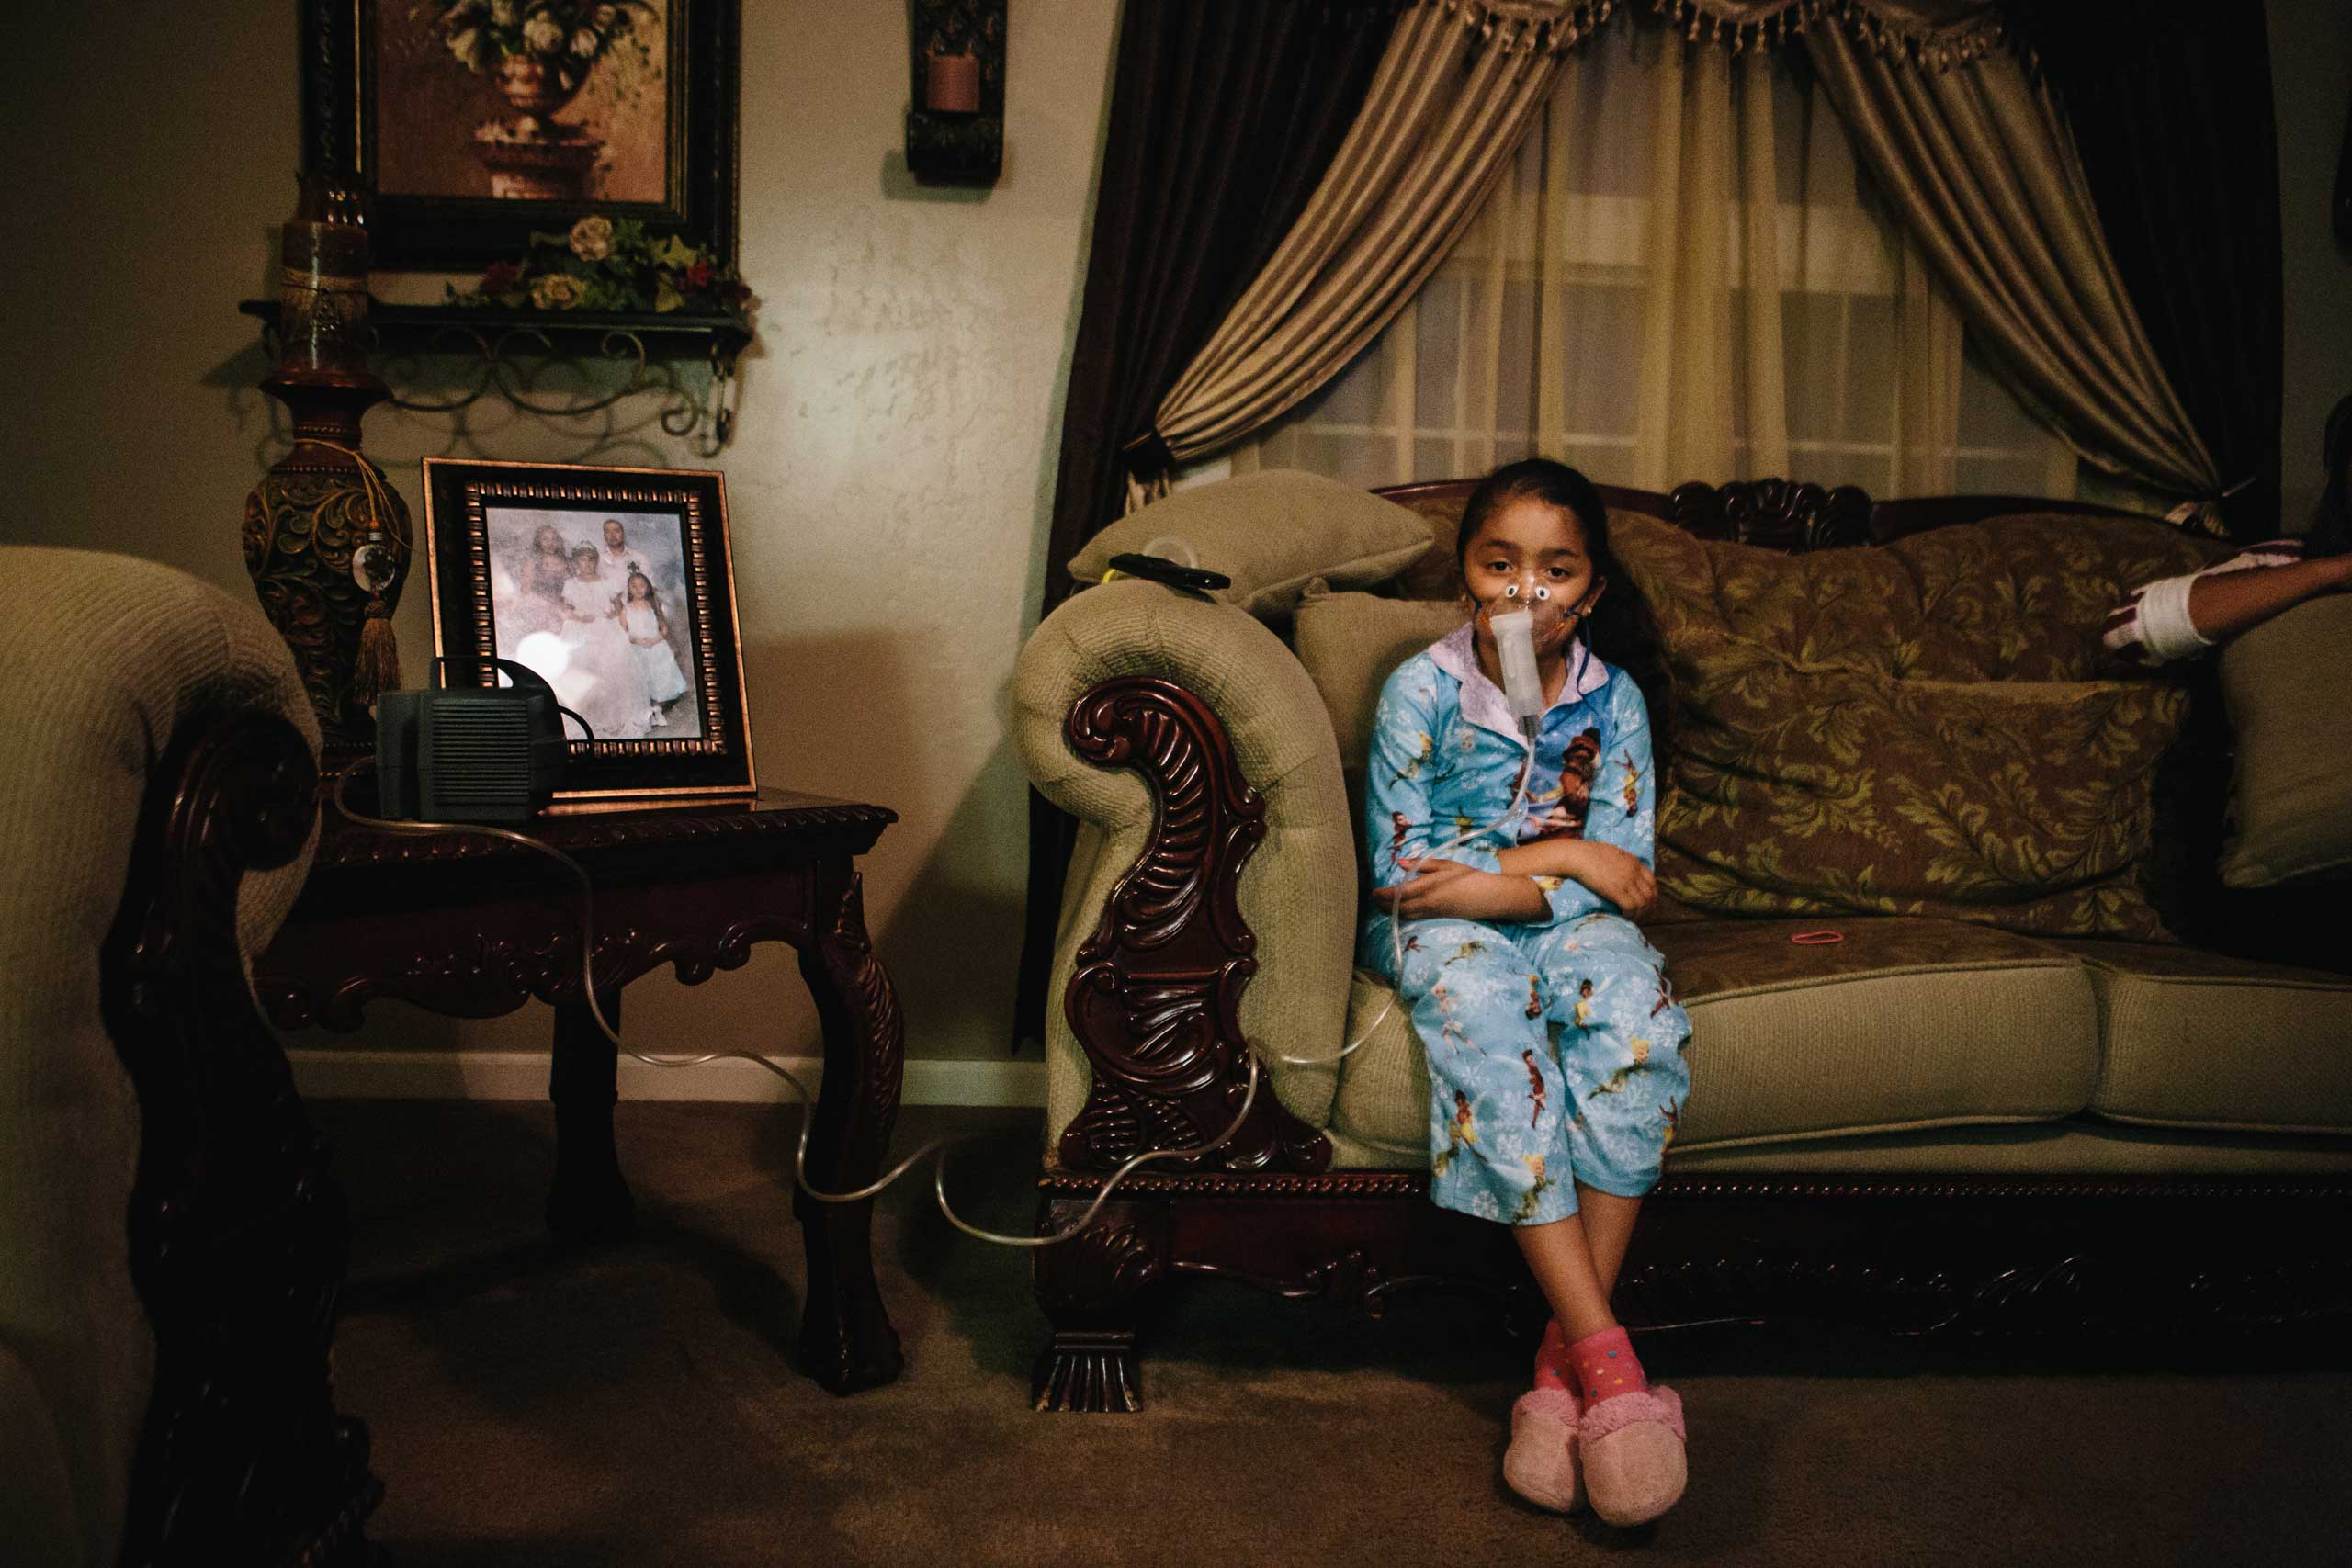 Yareli Gonzalez, 7, suffers from asthma and receives two nebulizer treatments per day, indefinitely. Gonzalez lives in Shafter, a rural farming town in Kern County, Calif. Kern County sits at the southern end of the San Joaquin Valley, an area known for having the worst air in the nation due to dust, smog and high levels of ozone.